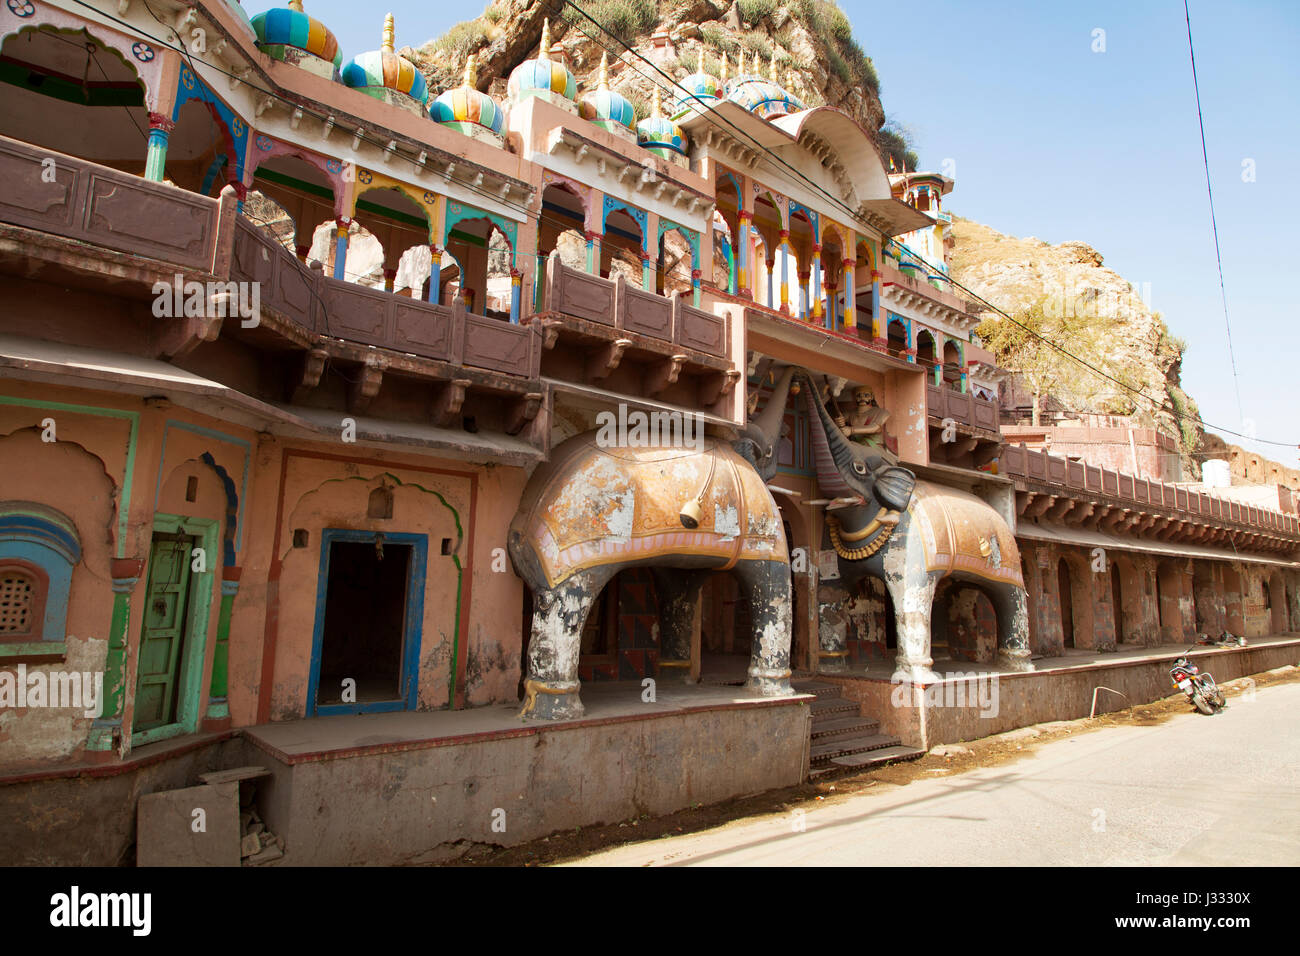 The Kala Gaura Bhairav Temple is one of the famous and unique temples at Sawai Madhopur city in Rajasthan, India. - Stock Image